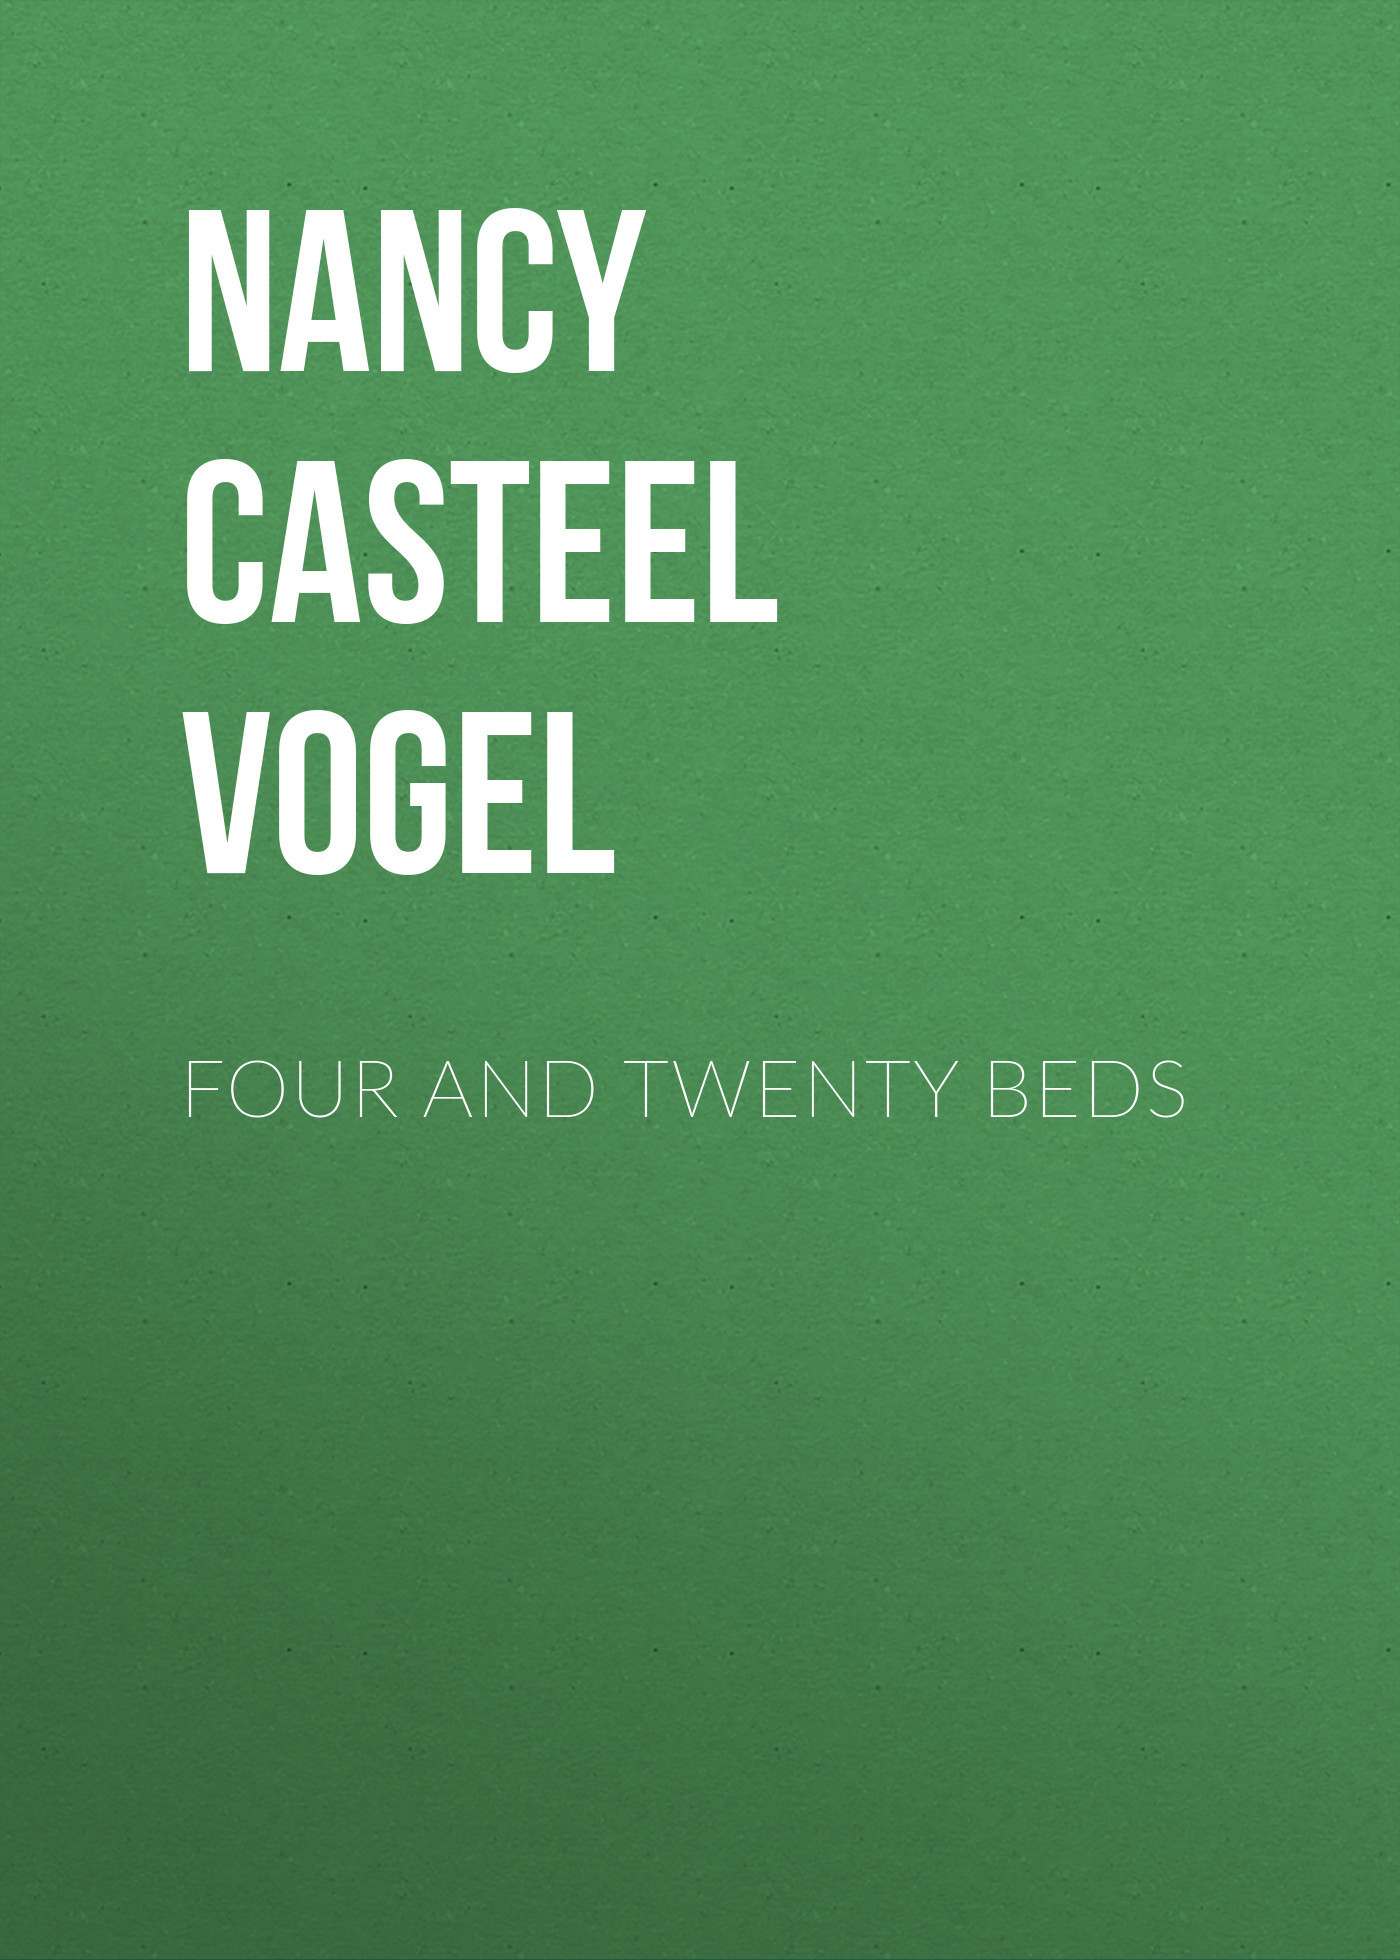 Nancy Casteel Vogel Four and Twenty Beds gesimondo nancy materiality and interior construction